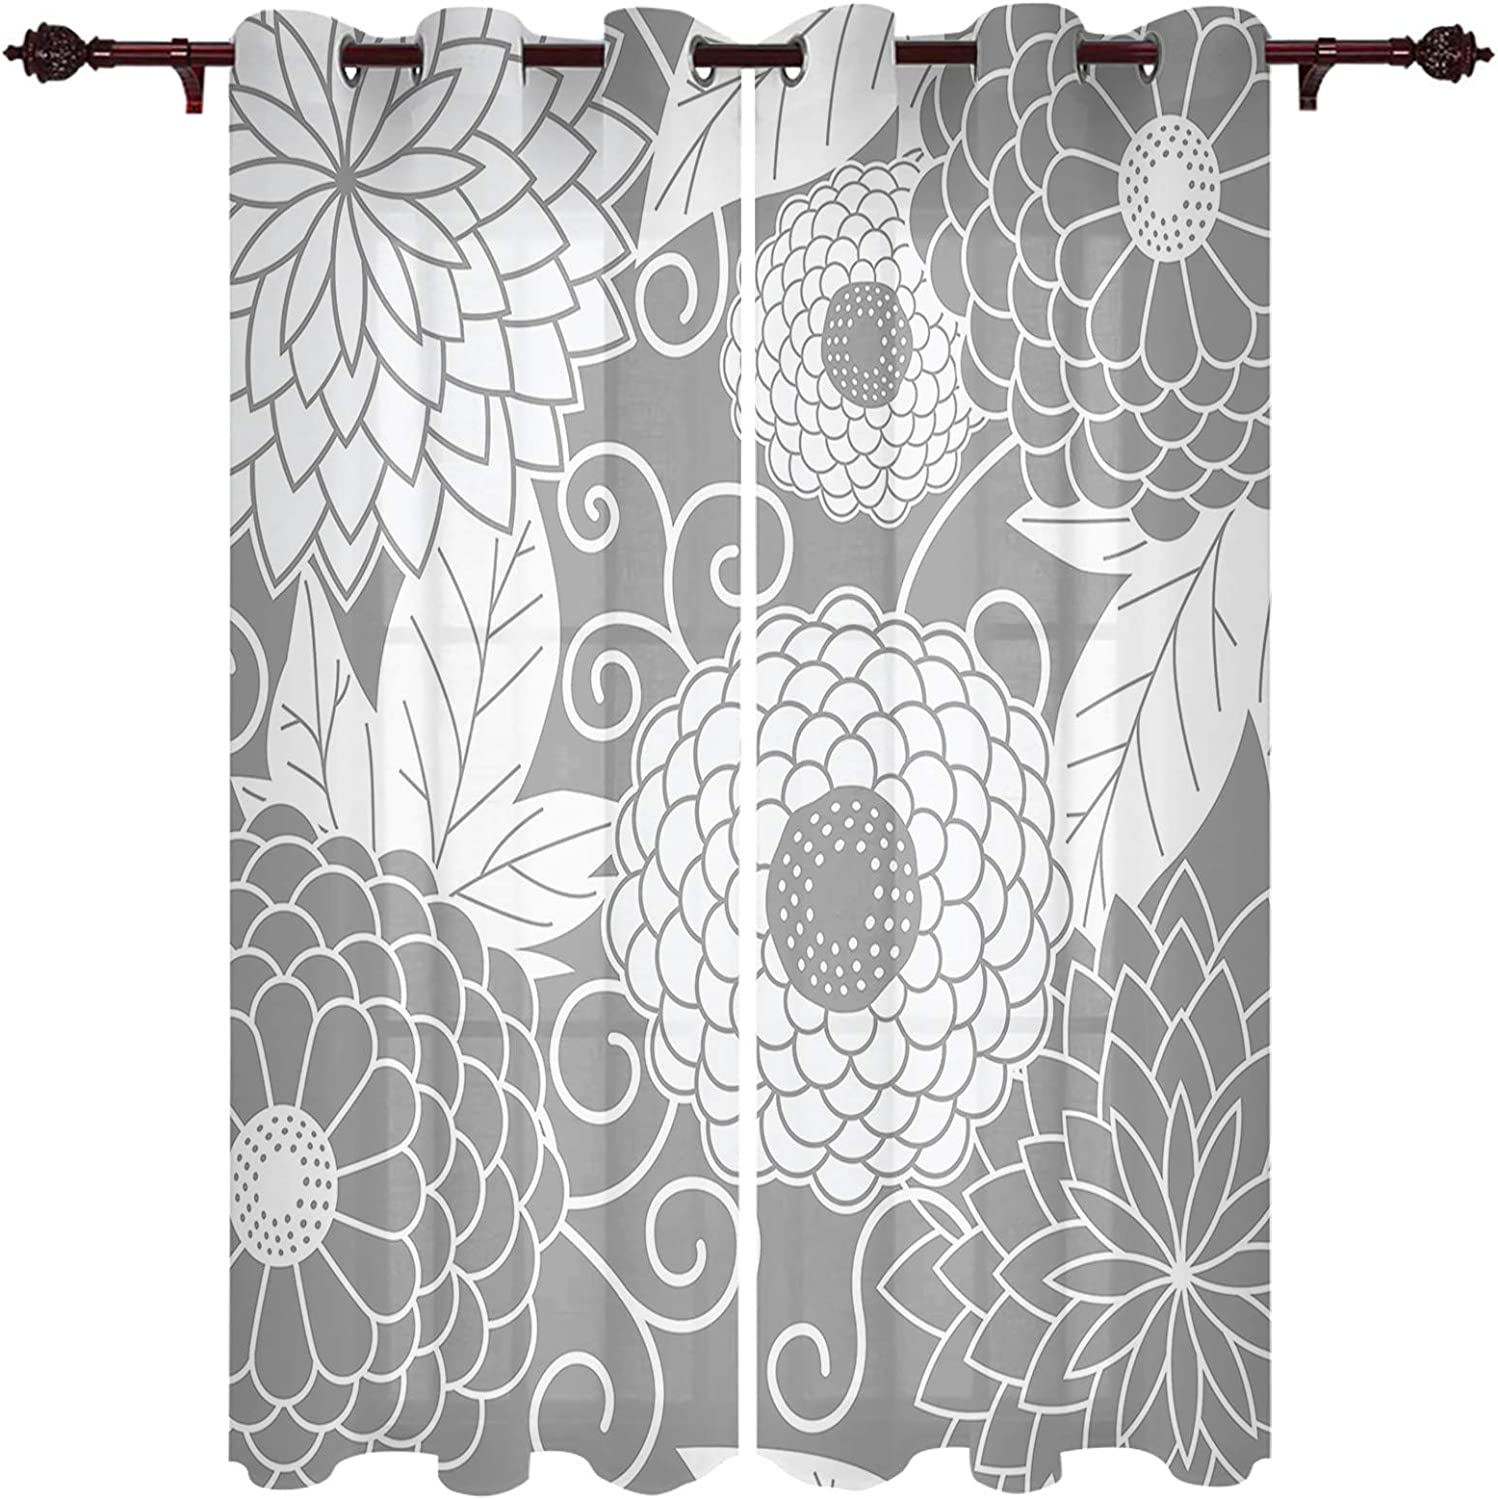 EwdeWwo Curtains for Living Oklahoma City Mall Room Drapes Luxury goods 63 Length Abstract Inch